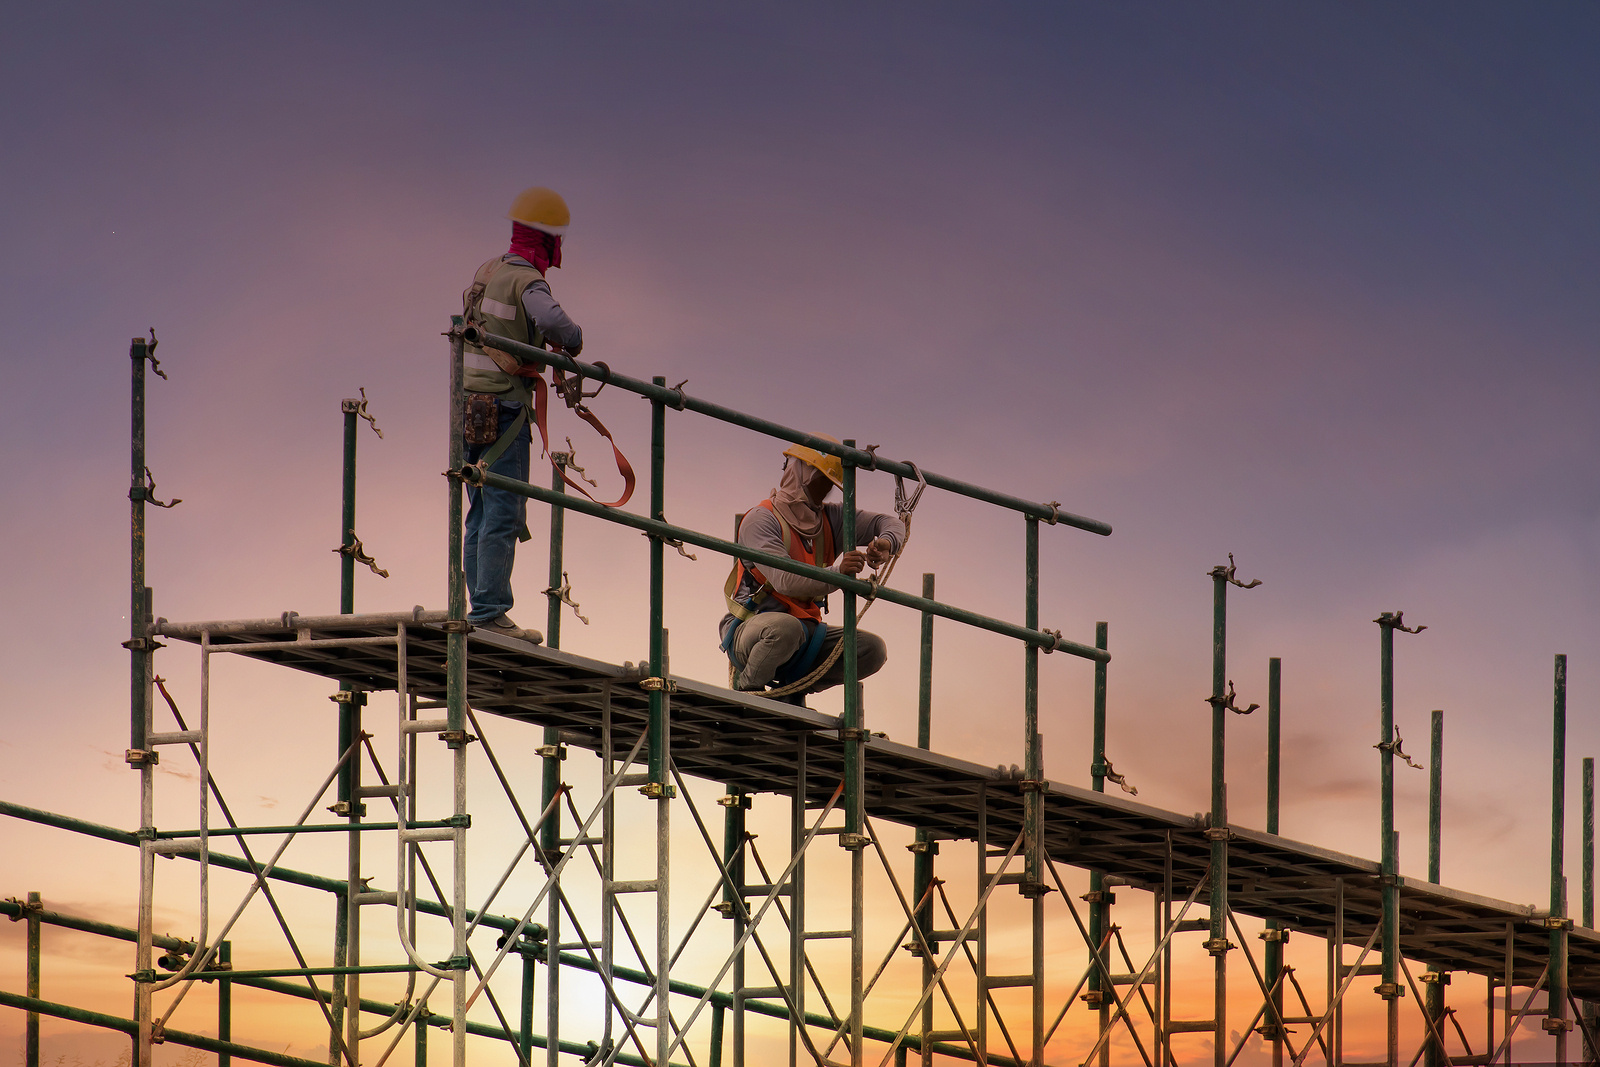 construction workers at height on scaffolding with sunset in background